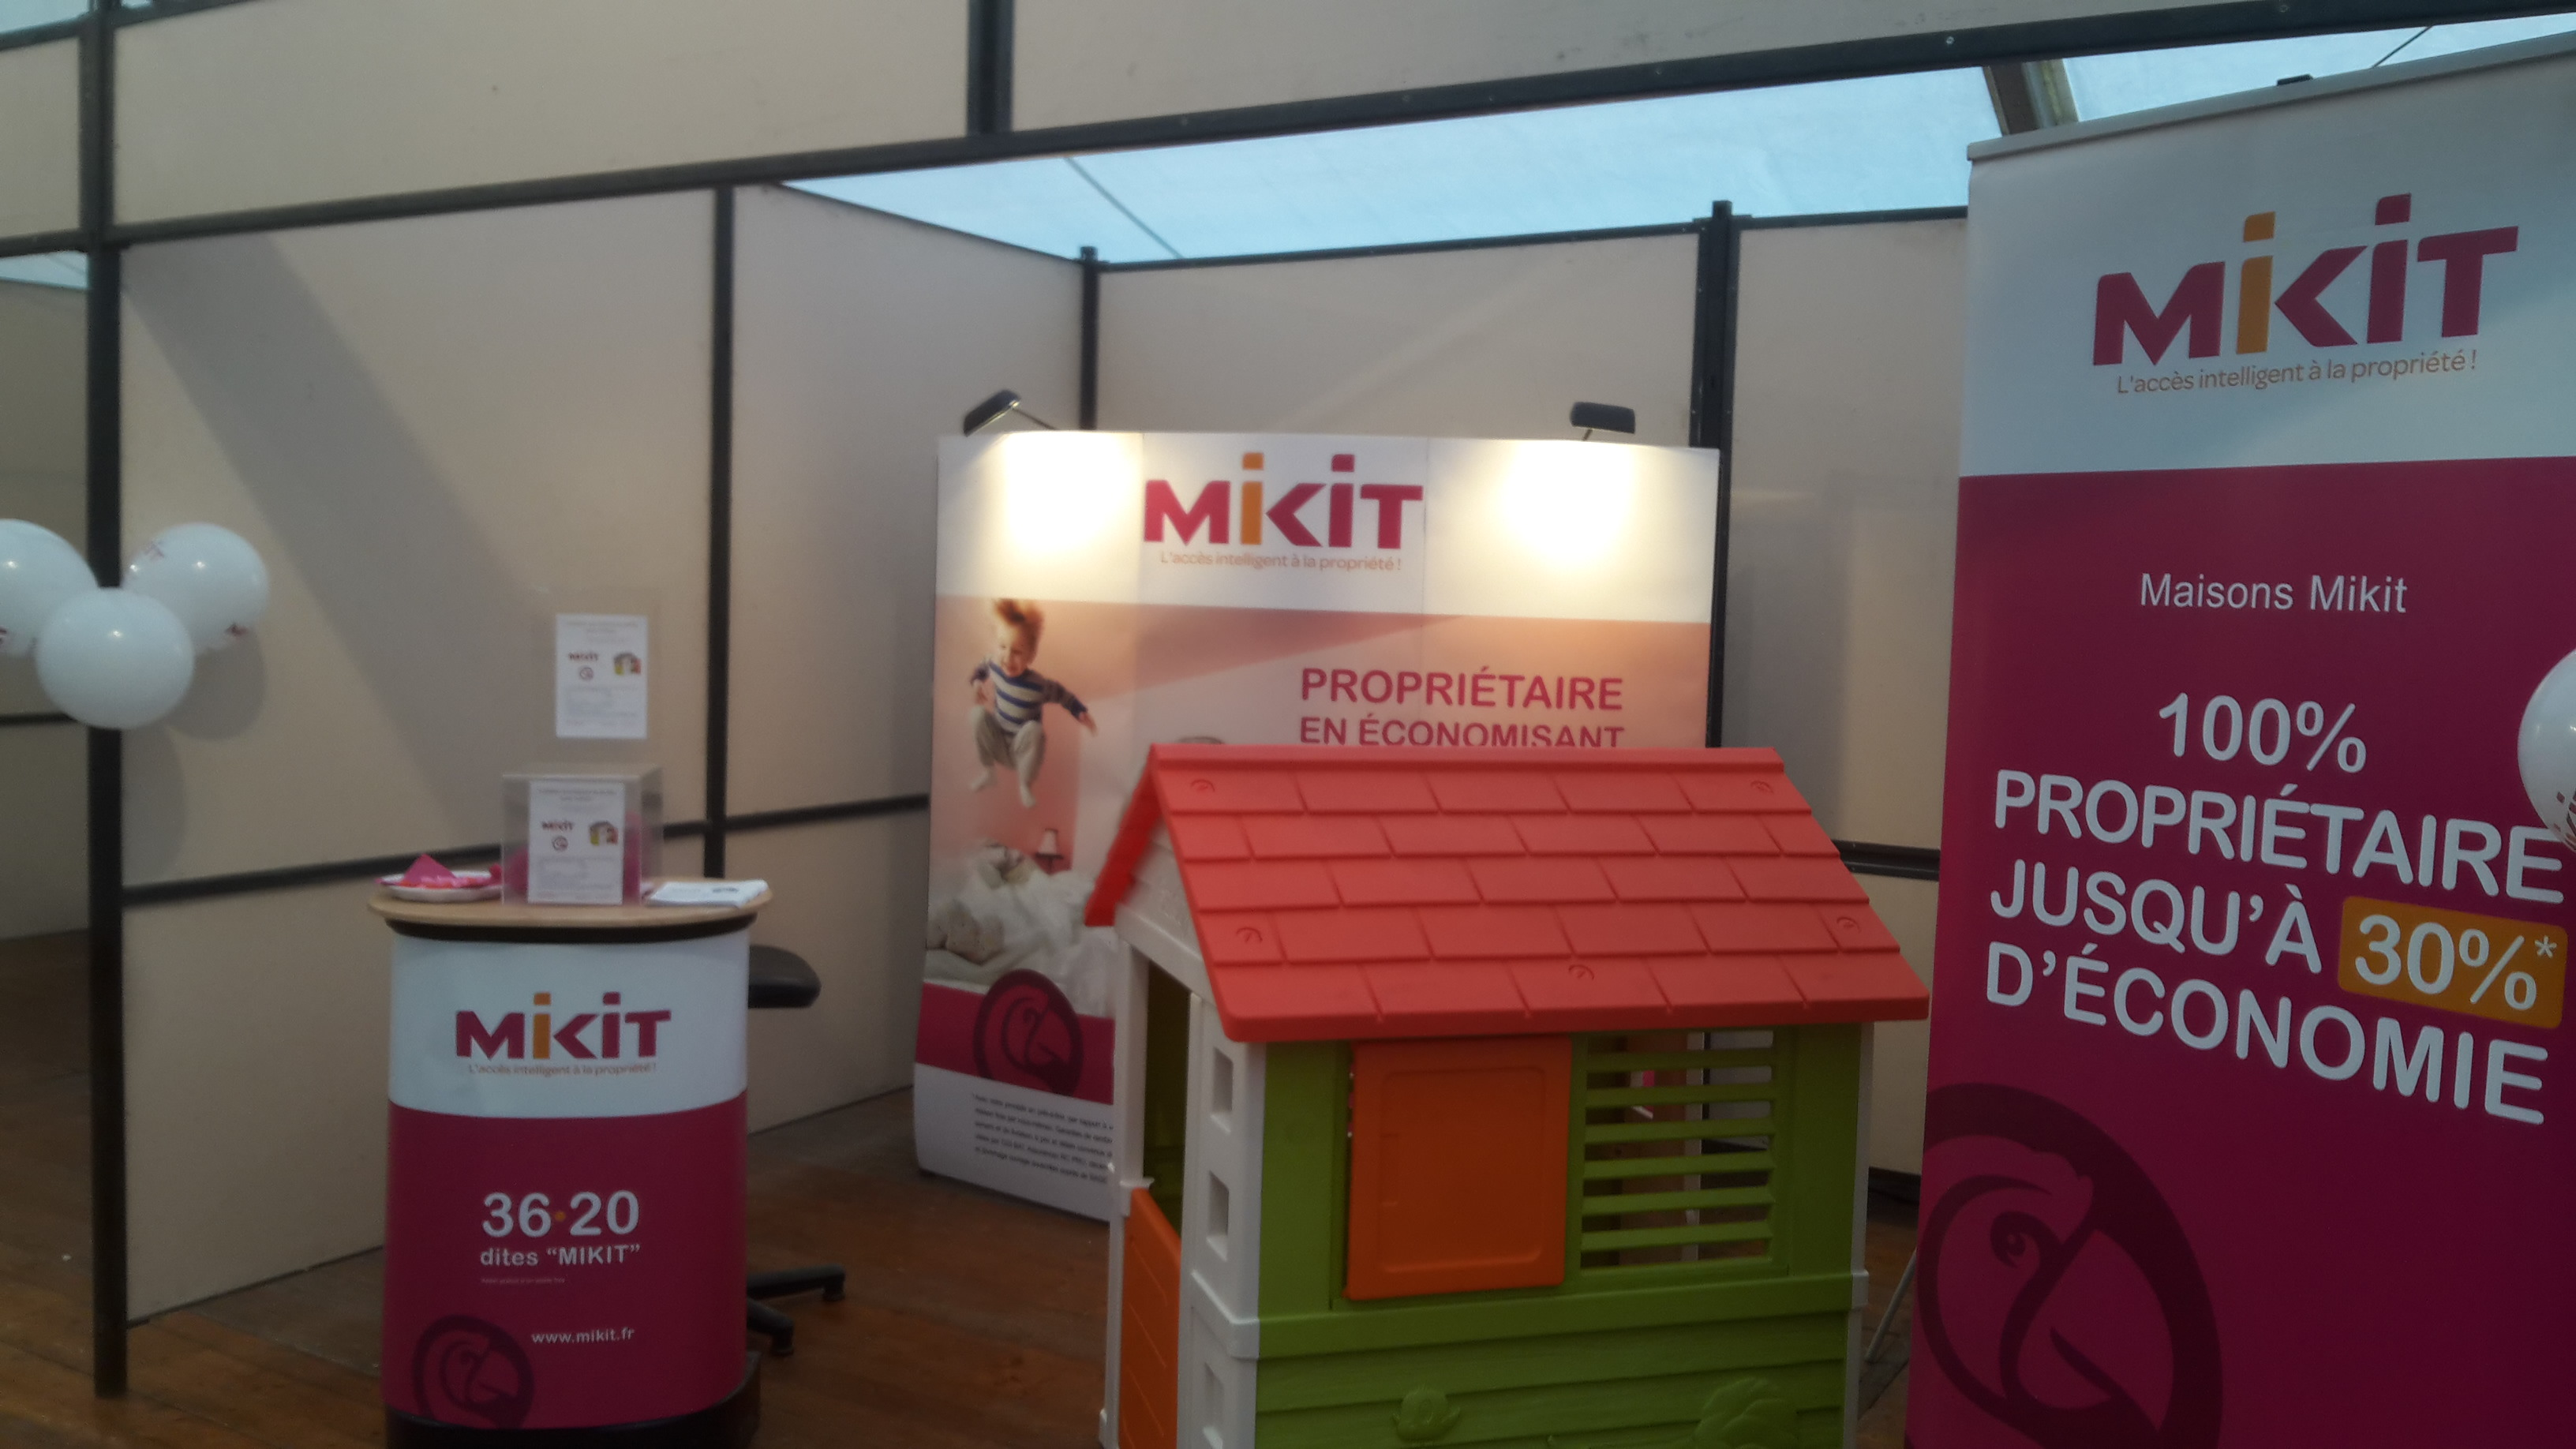 Salon de l 39 habitat mikit for Salon de l habitat laval